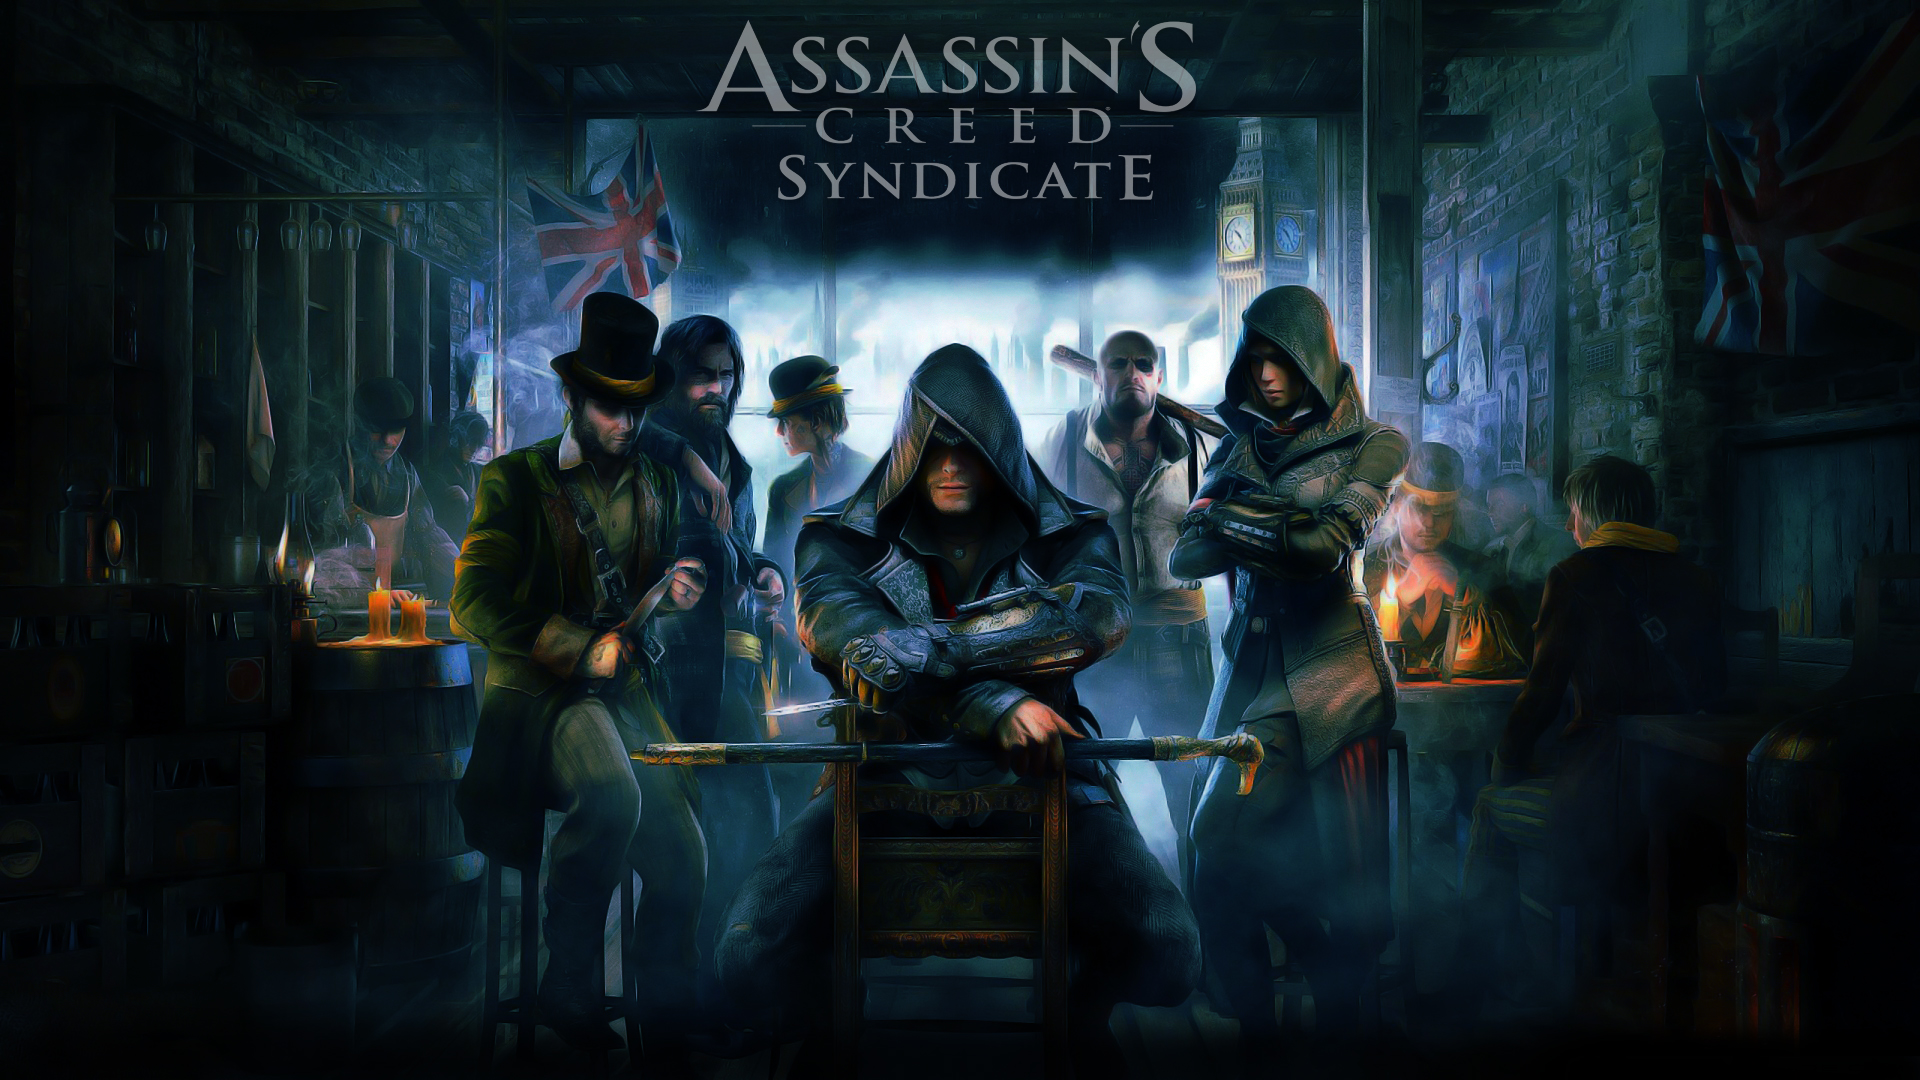 Арт к игре Assassin's Creed: Syndicate